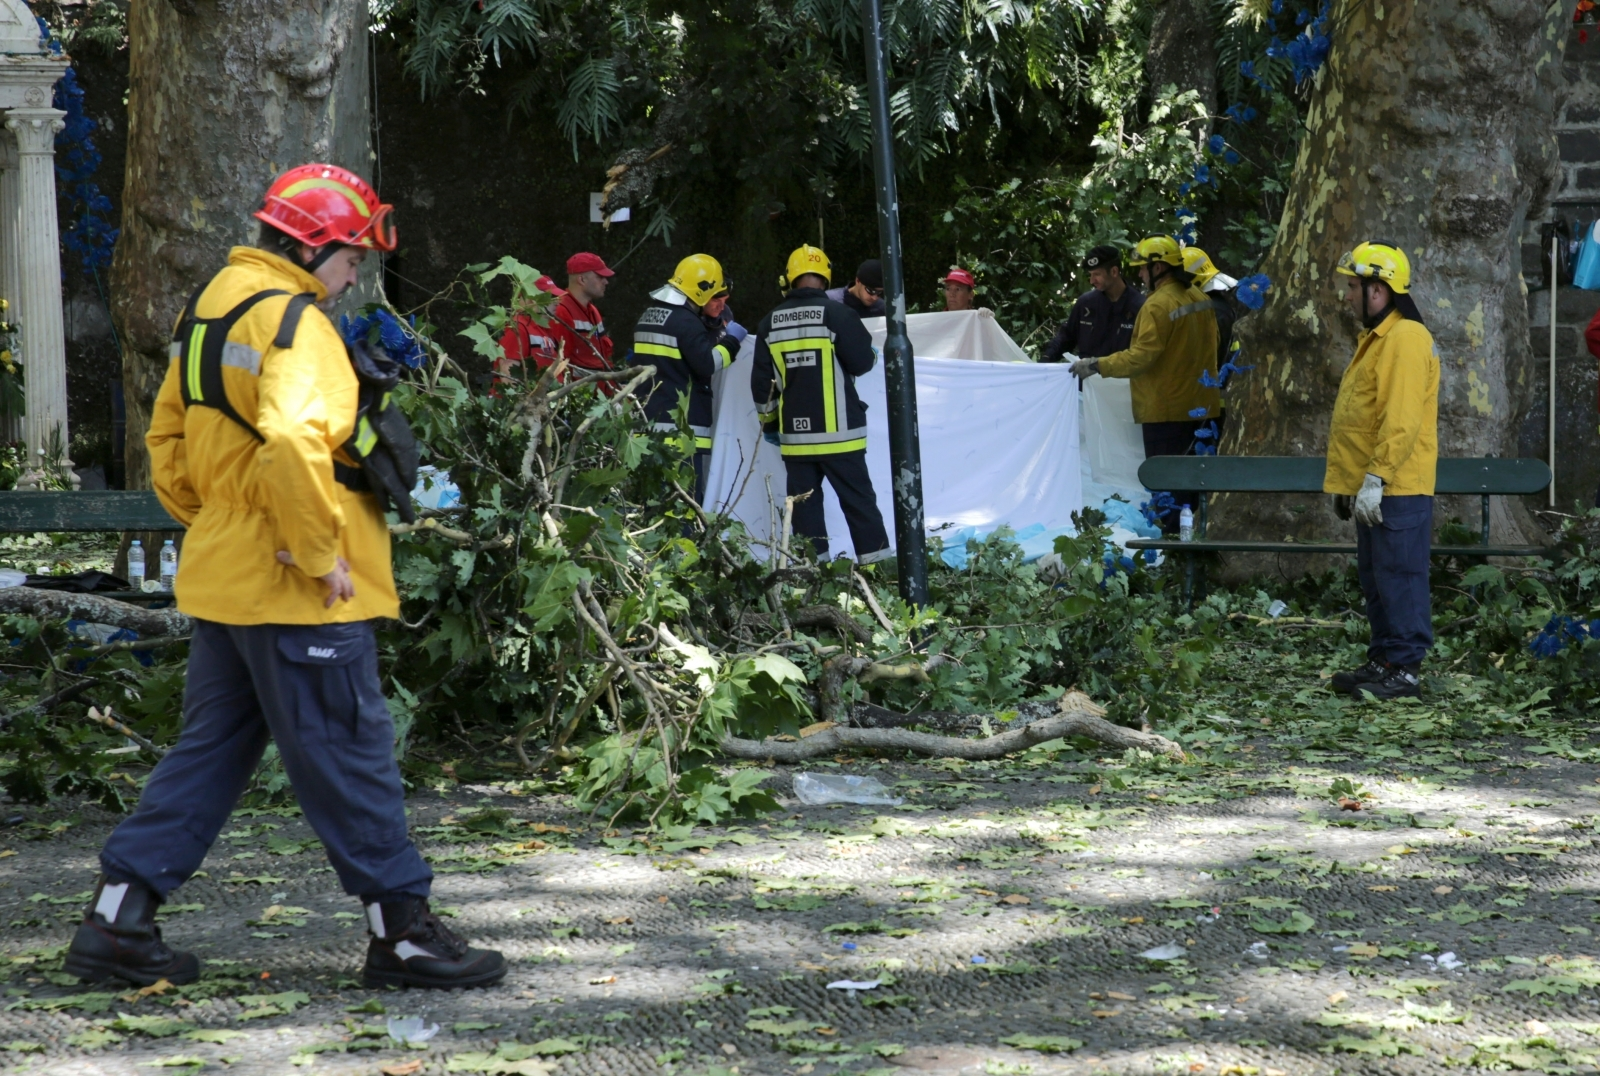 Falling tree kills multiple people in Portugal